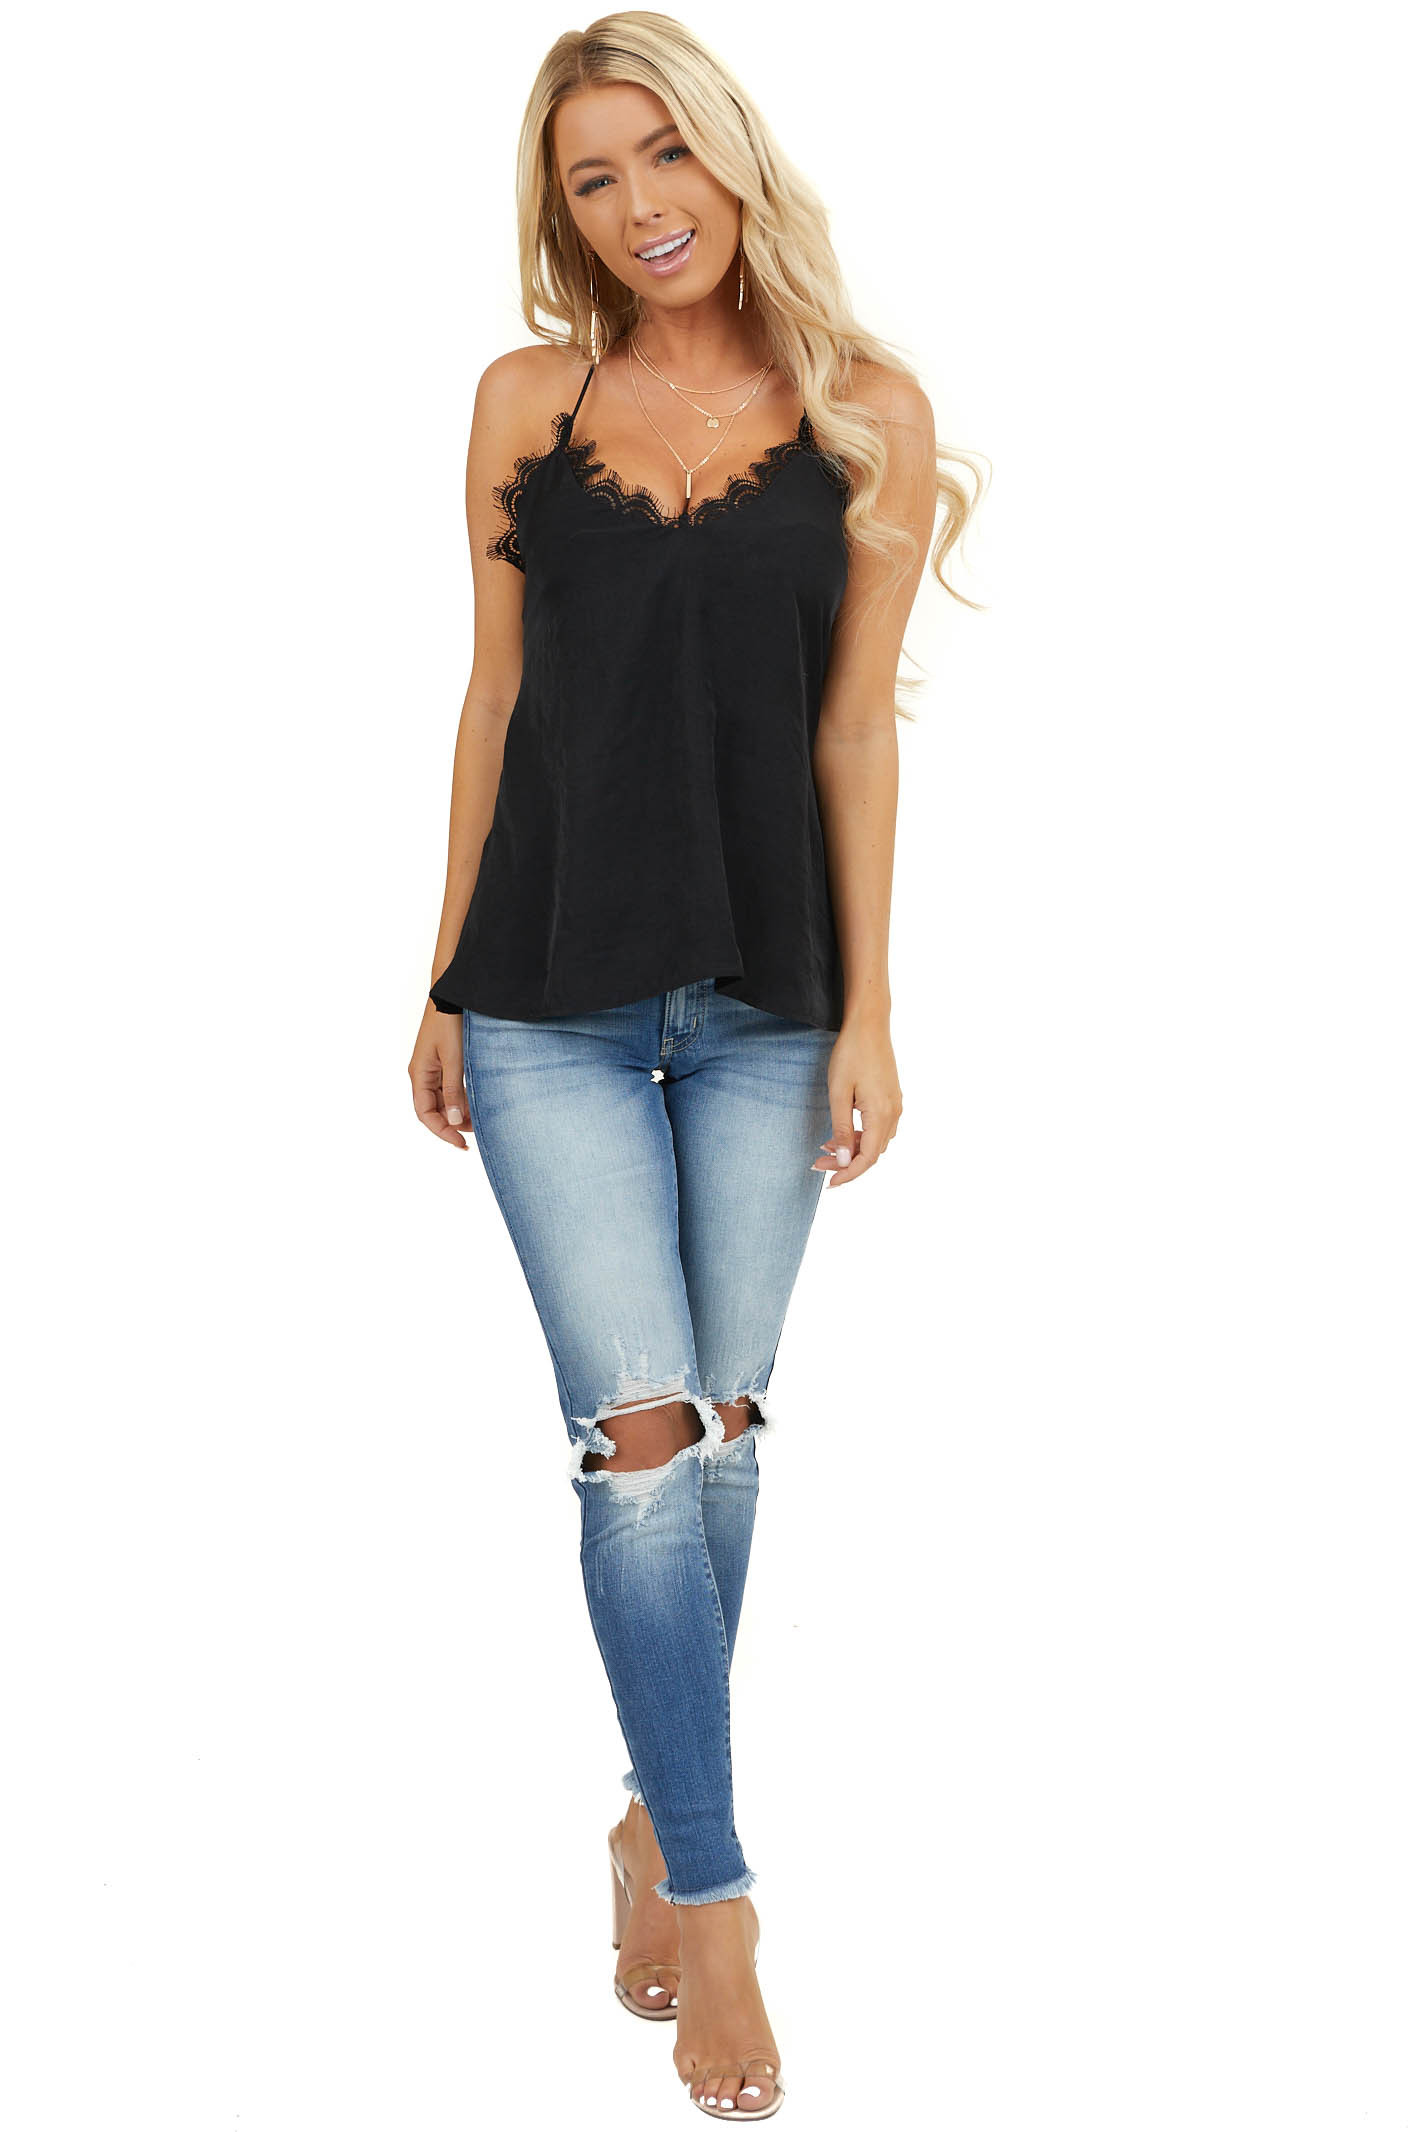 Black Woven Tank Top with Lace Detail and Back Braided Strap